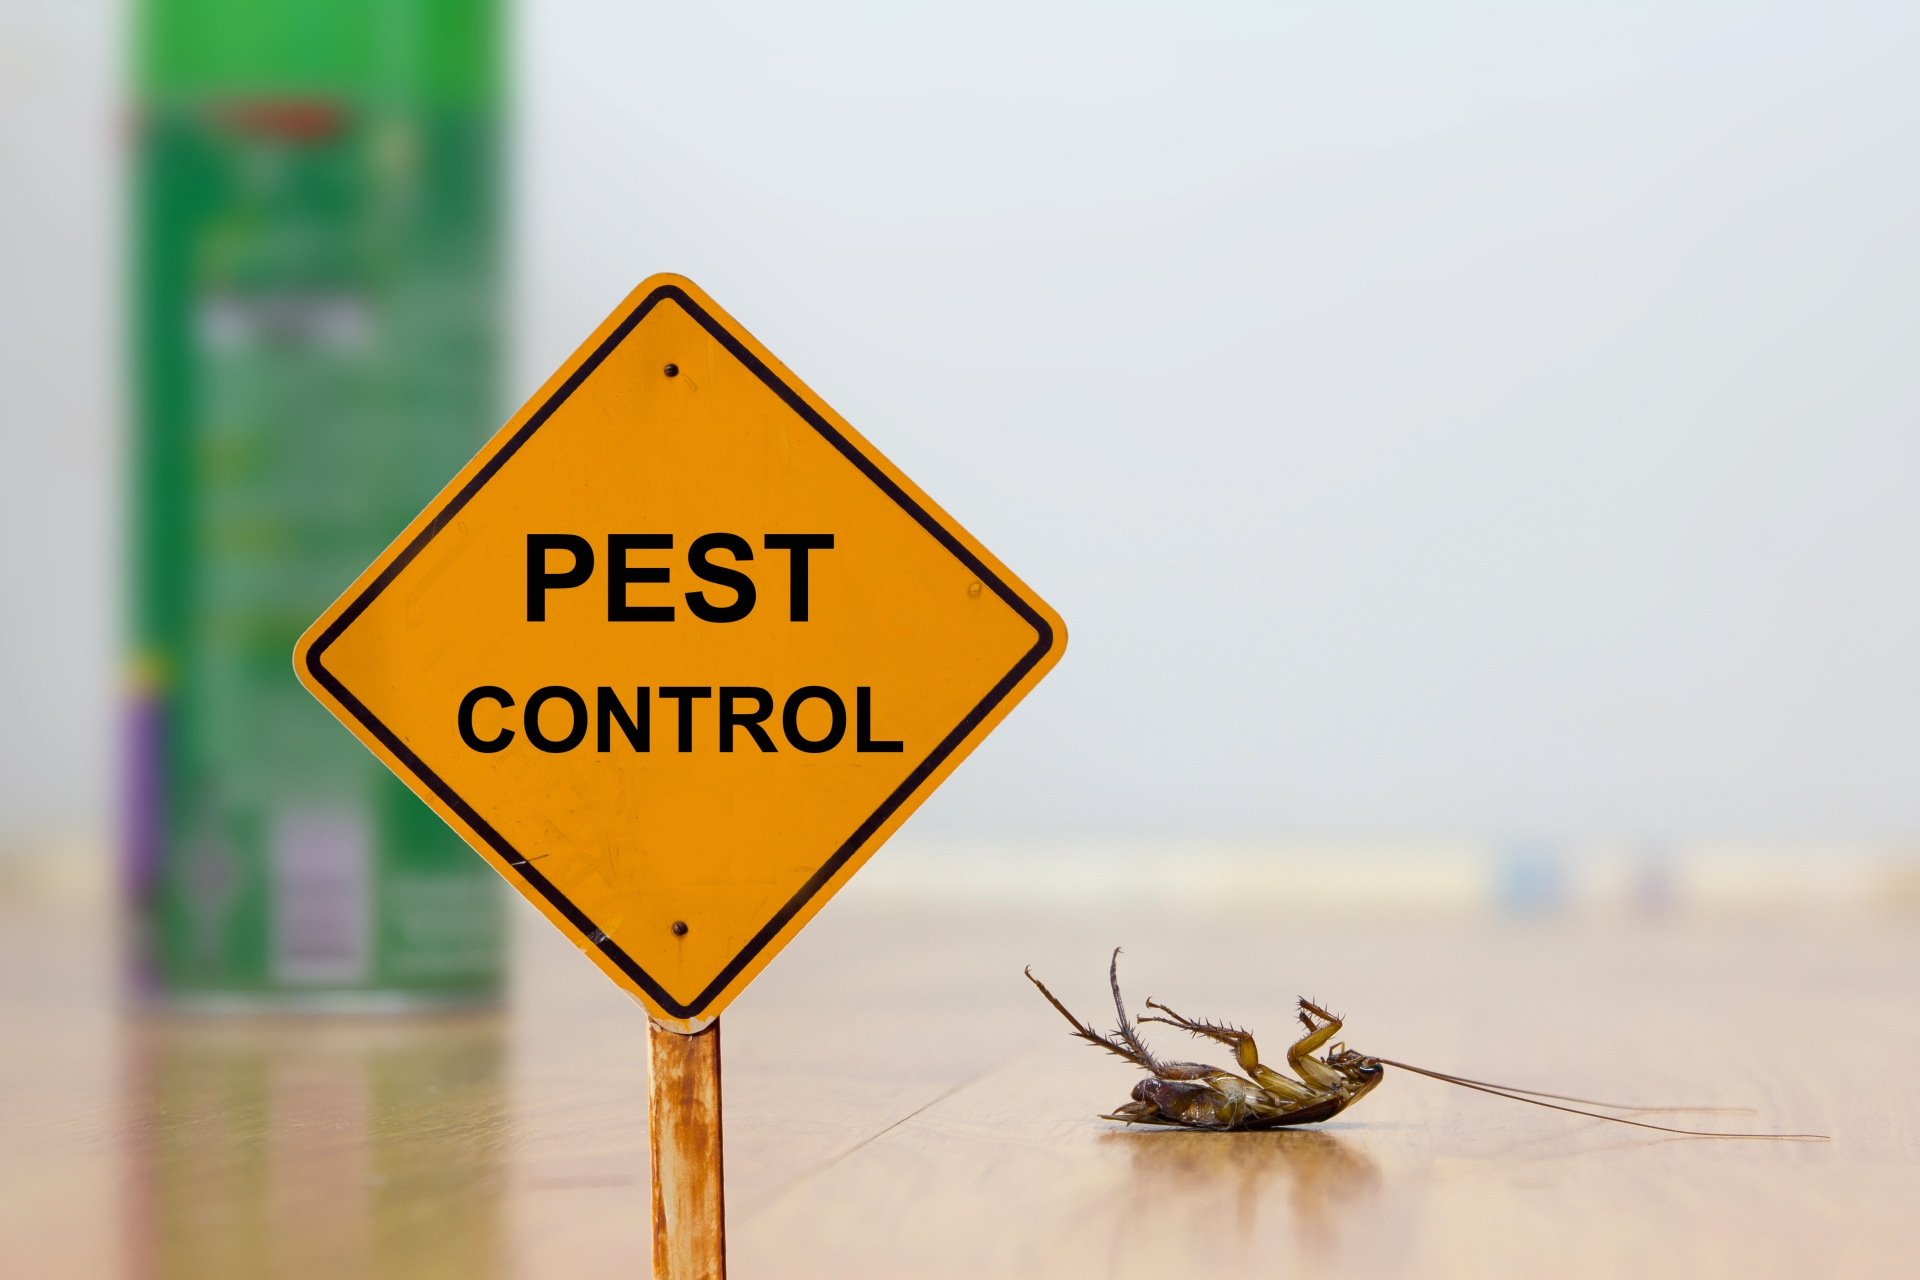 24 Hour Pest Control, Pest Control in Falconwood, Welling, DA16. Call Now 020 8166 9746